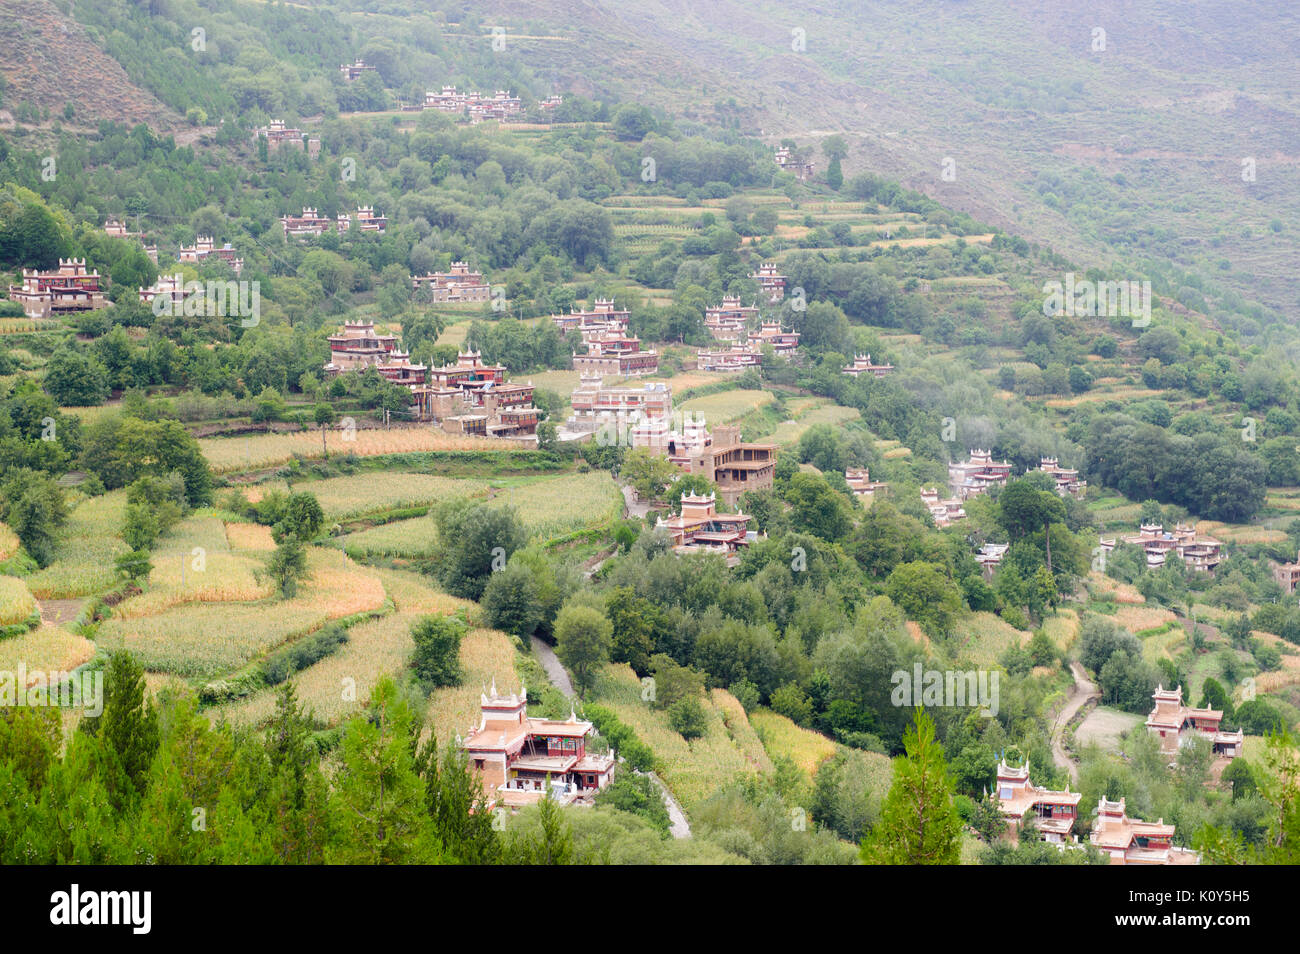 The village of Danpa in the fertile highlands of Kham, Tibet - Stock Image